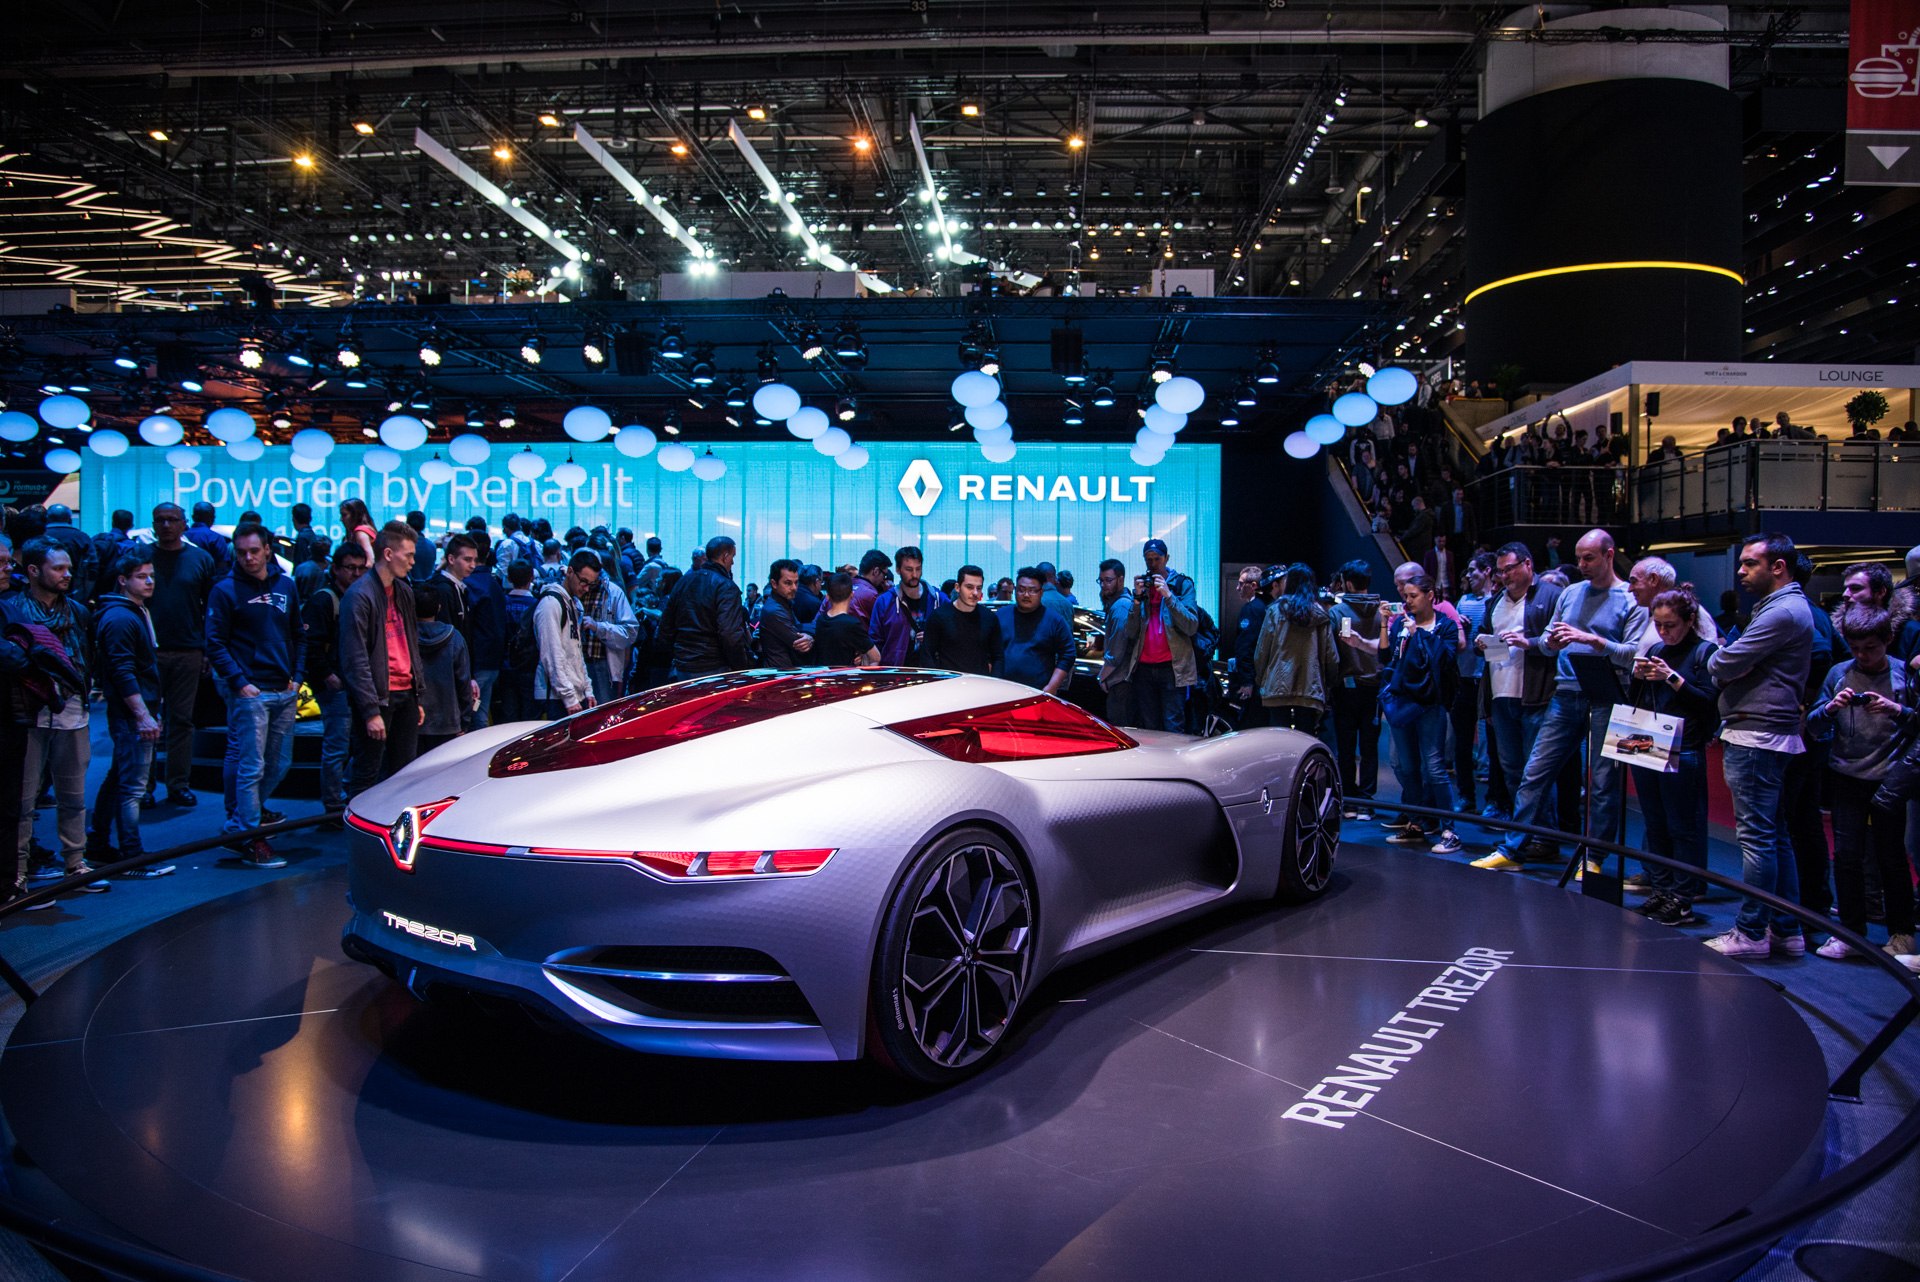 geneva-international-motor-show-igor-sinitsin-76